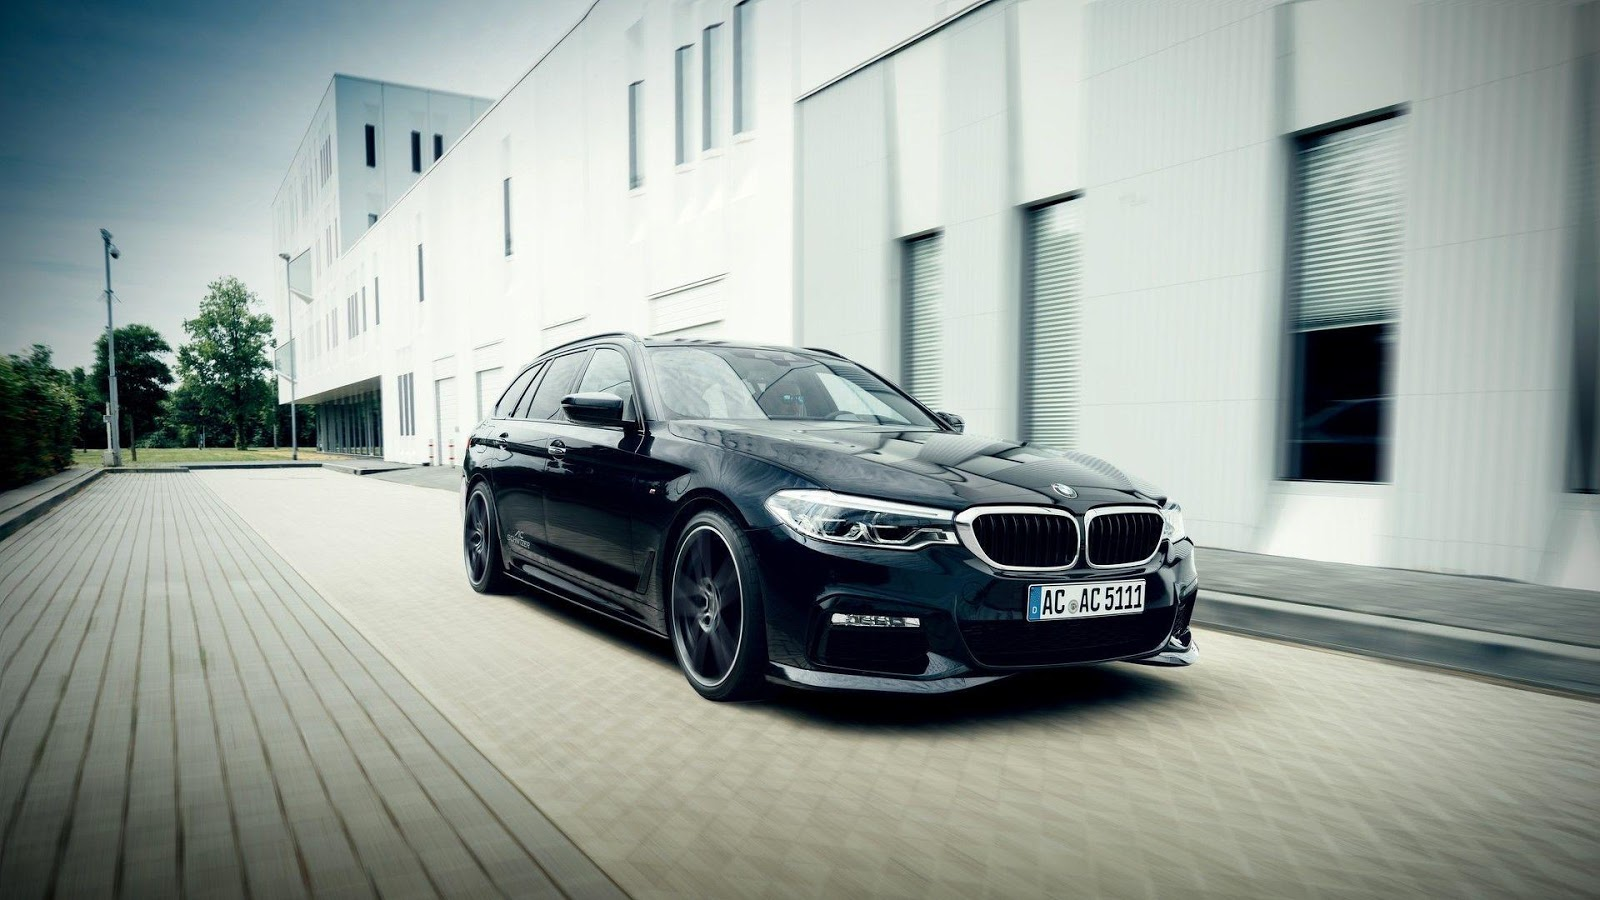 ac schnitzer reveals new bmw 5 series body kit and exhaust autoevolution. Black Bedroom Furniture Sets. Home Design Ideas